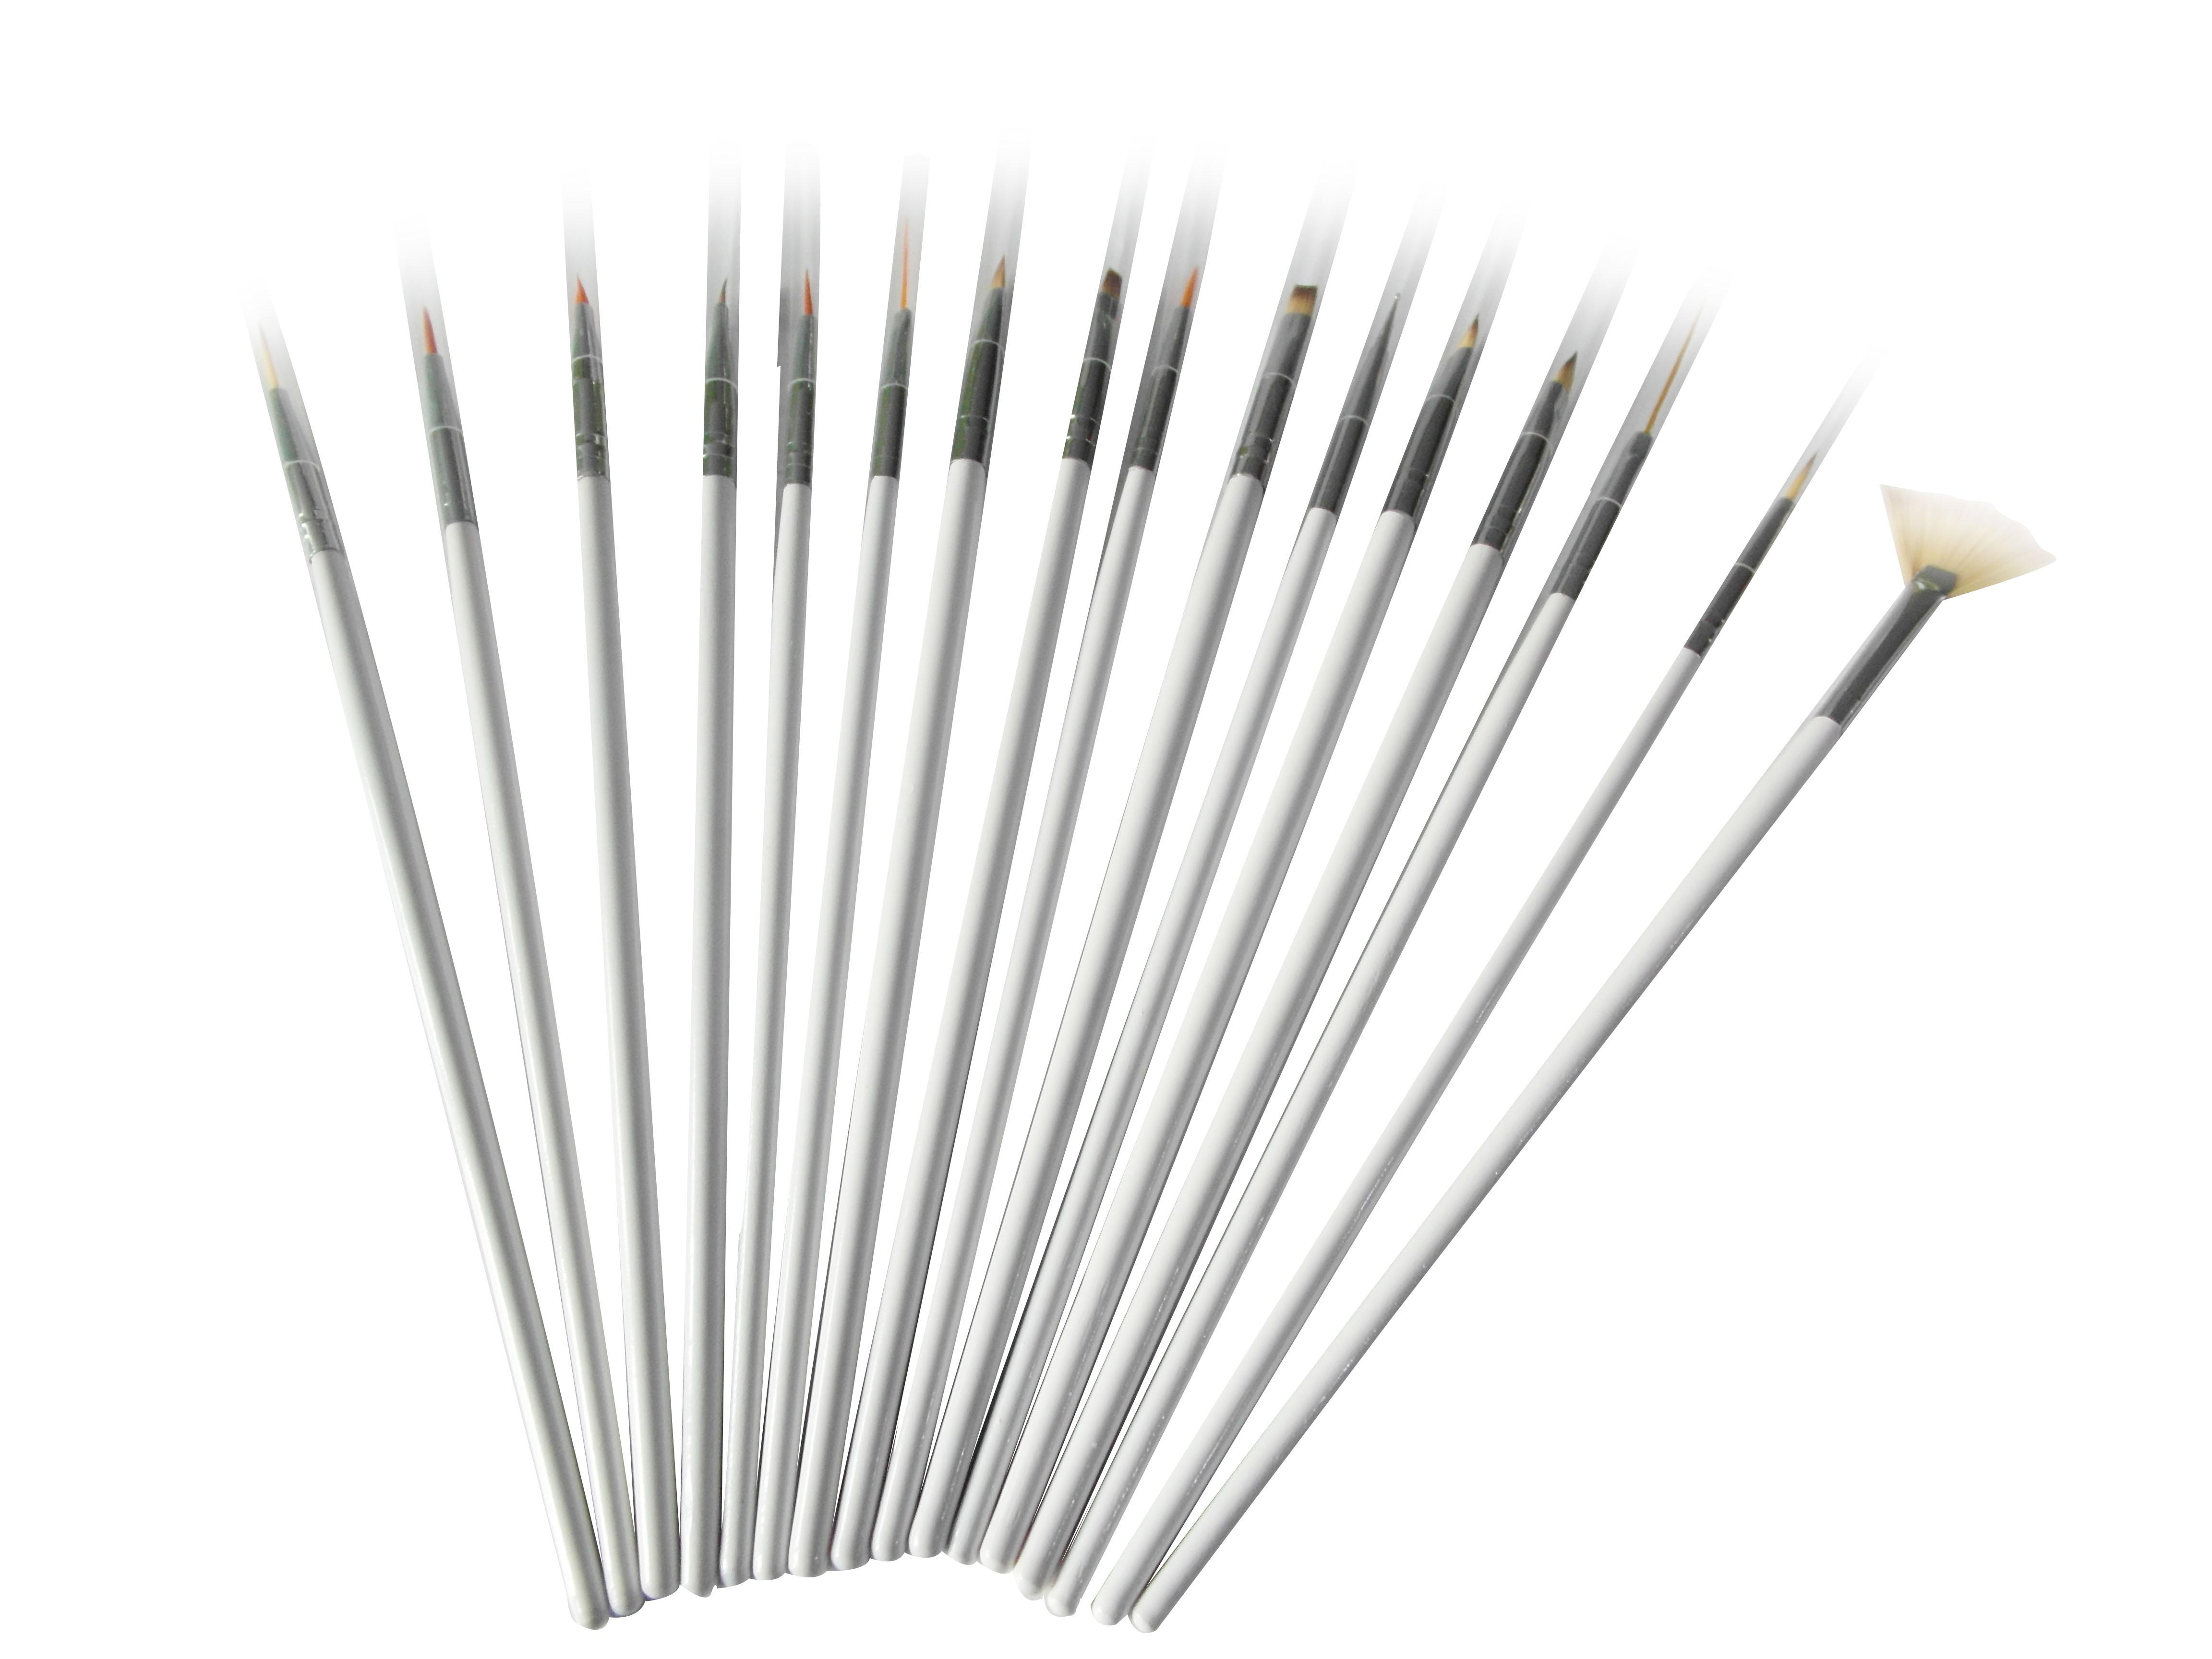 Wholesale Nail Design Brushes Nail Art Brush Kit For Personal Use